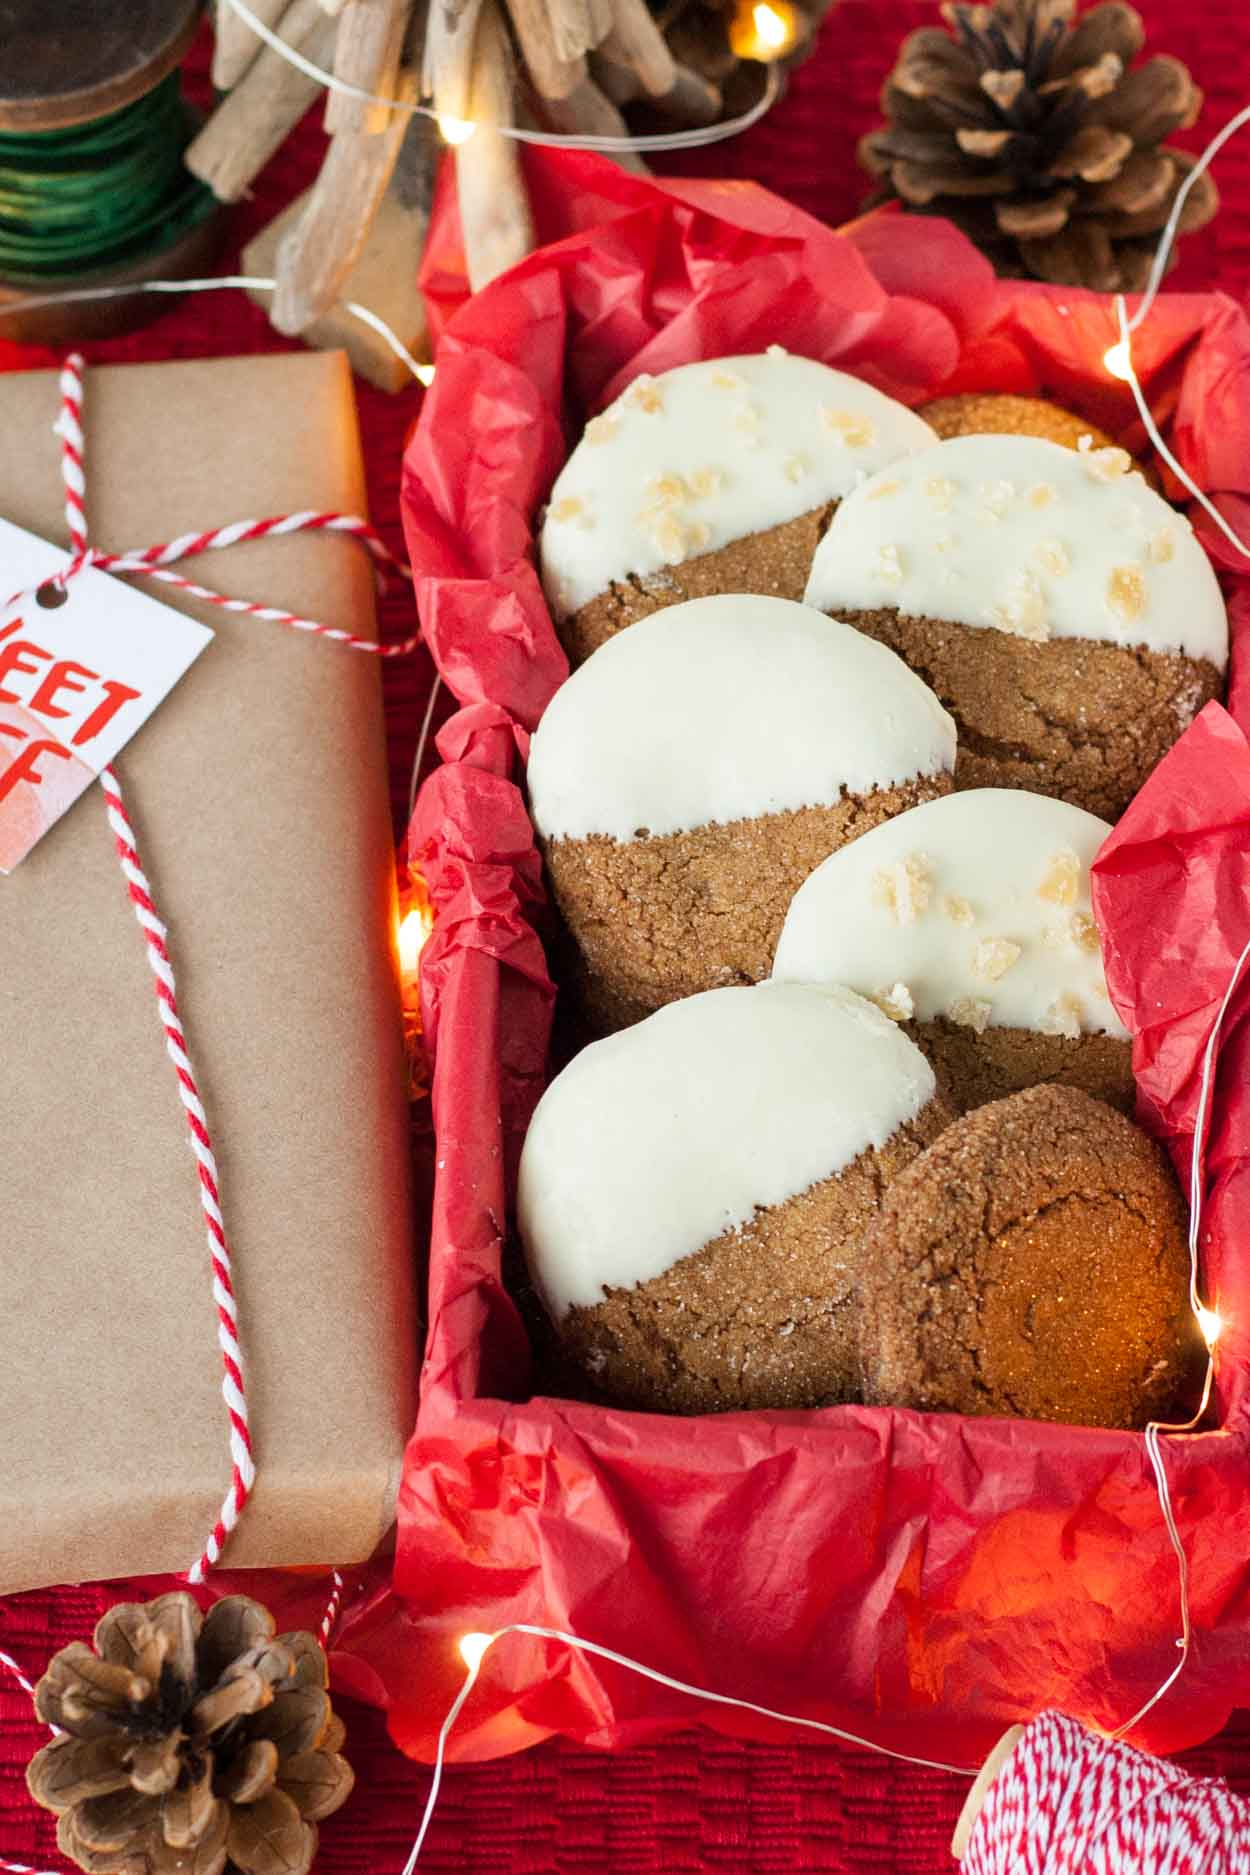 A box of white chocolate dipped chewy gingerbread cookies